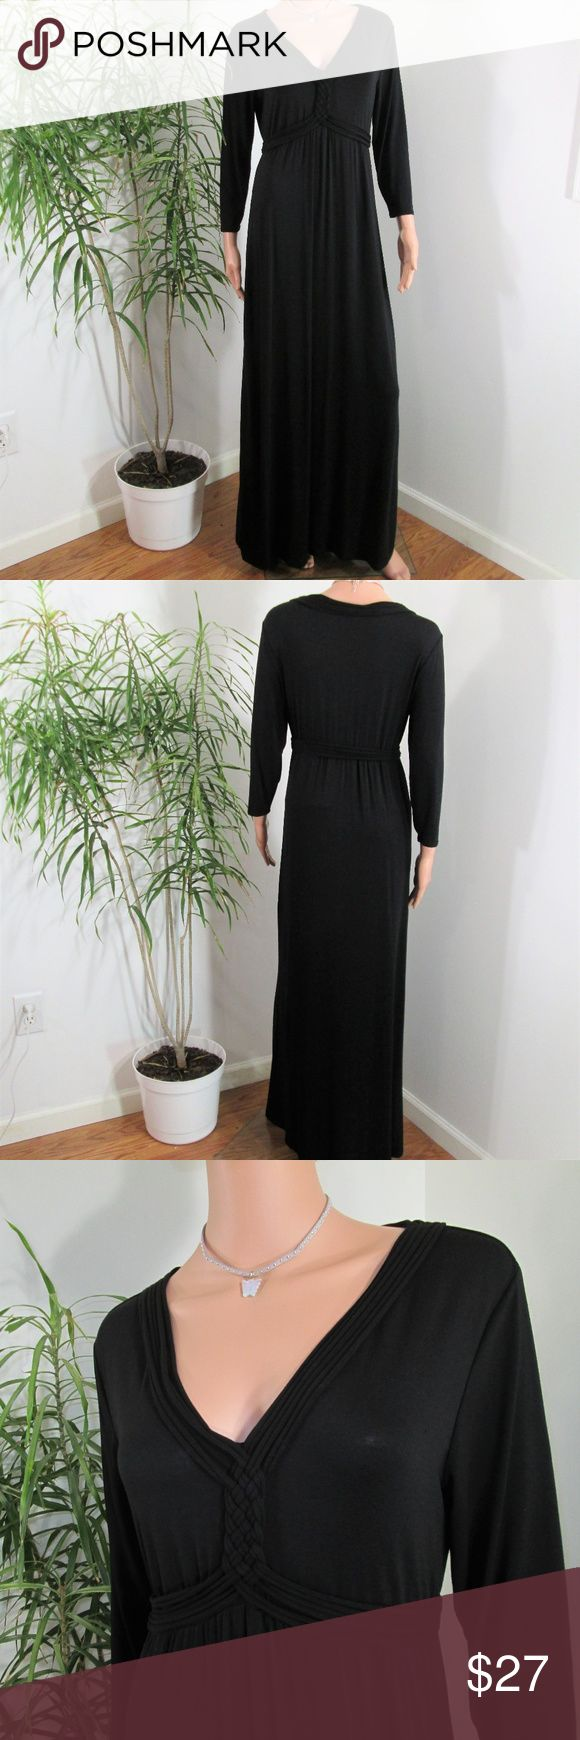 """Max Studio* Knotted Bodice Maxi Clean simple lines. Fitted bodice with faux woven straps/knot detail. Empire waist, Full flowing skirt. Stretchy.  Measured flat. 18"""" pit to pit. 58"""" long. on 5' 9'' model, 33'' x 24'' x 33.5''  Gothic Gypsy Renaissance Witchy  Vibes Max Studio Dresses Maxi"""